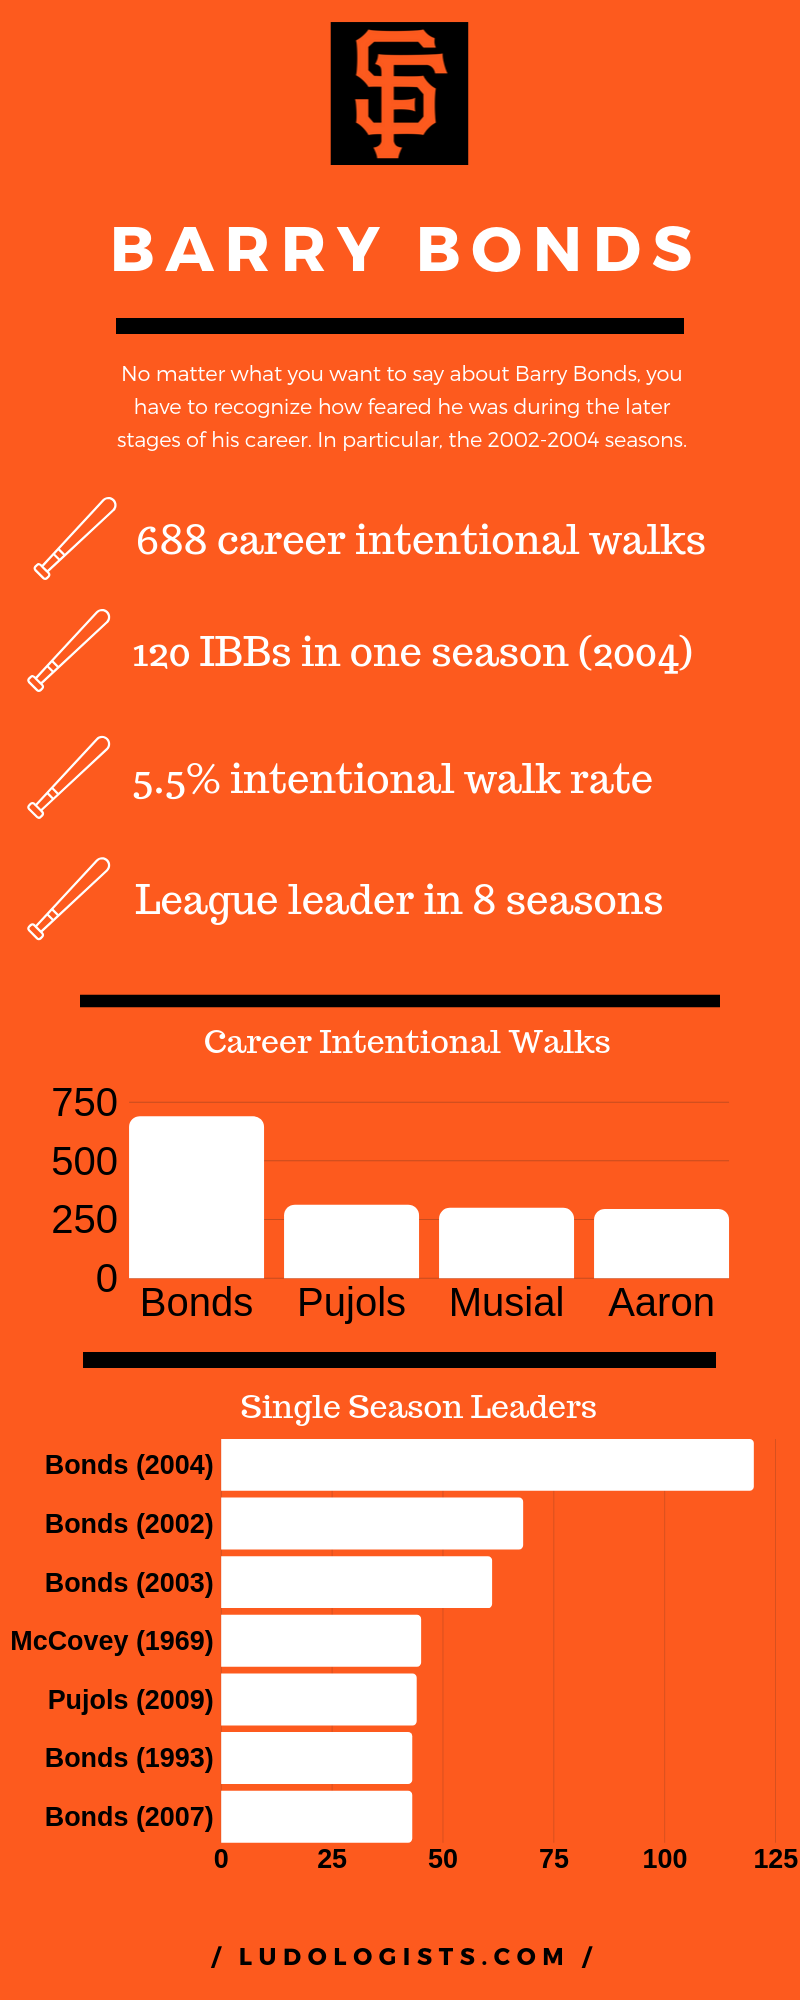 Barry Bonds Intentional Walks Infographic